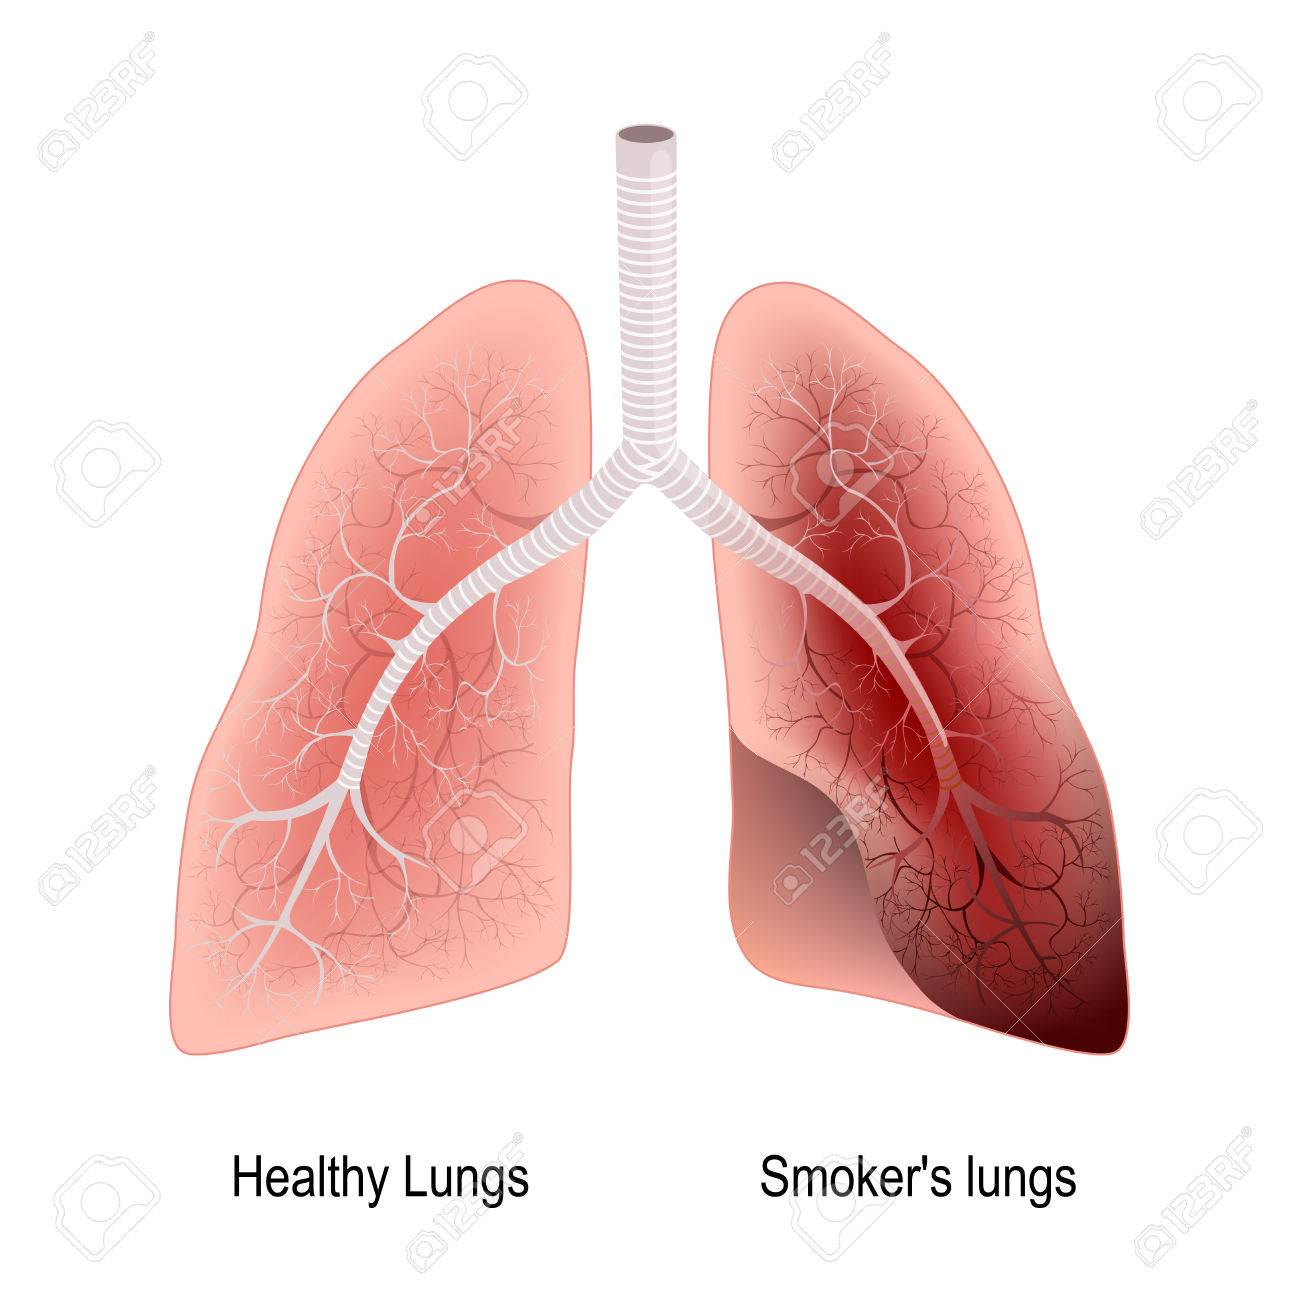 lungs after smoking kordur moorddiner co